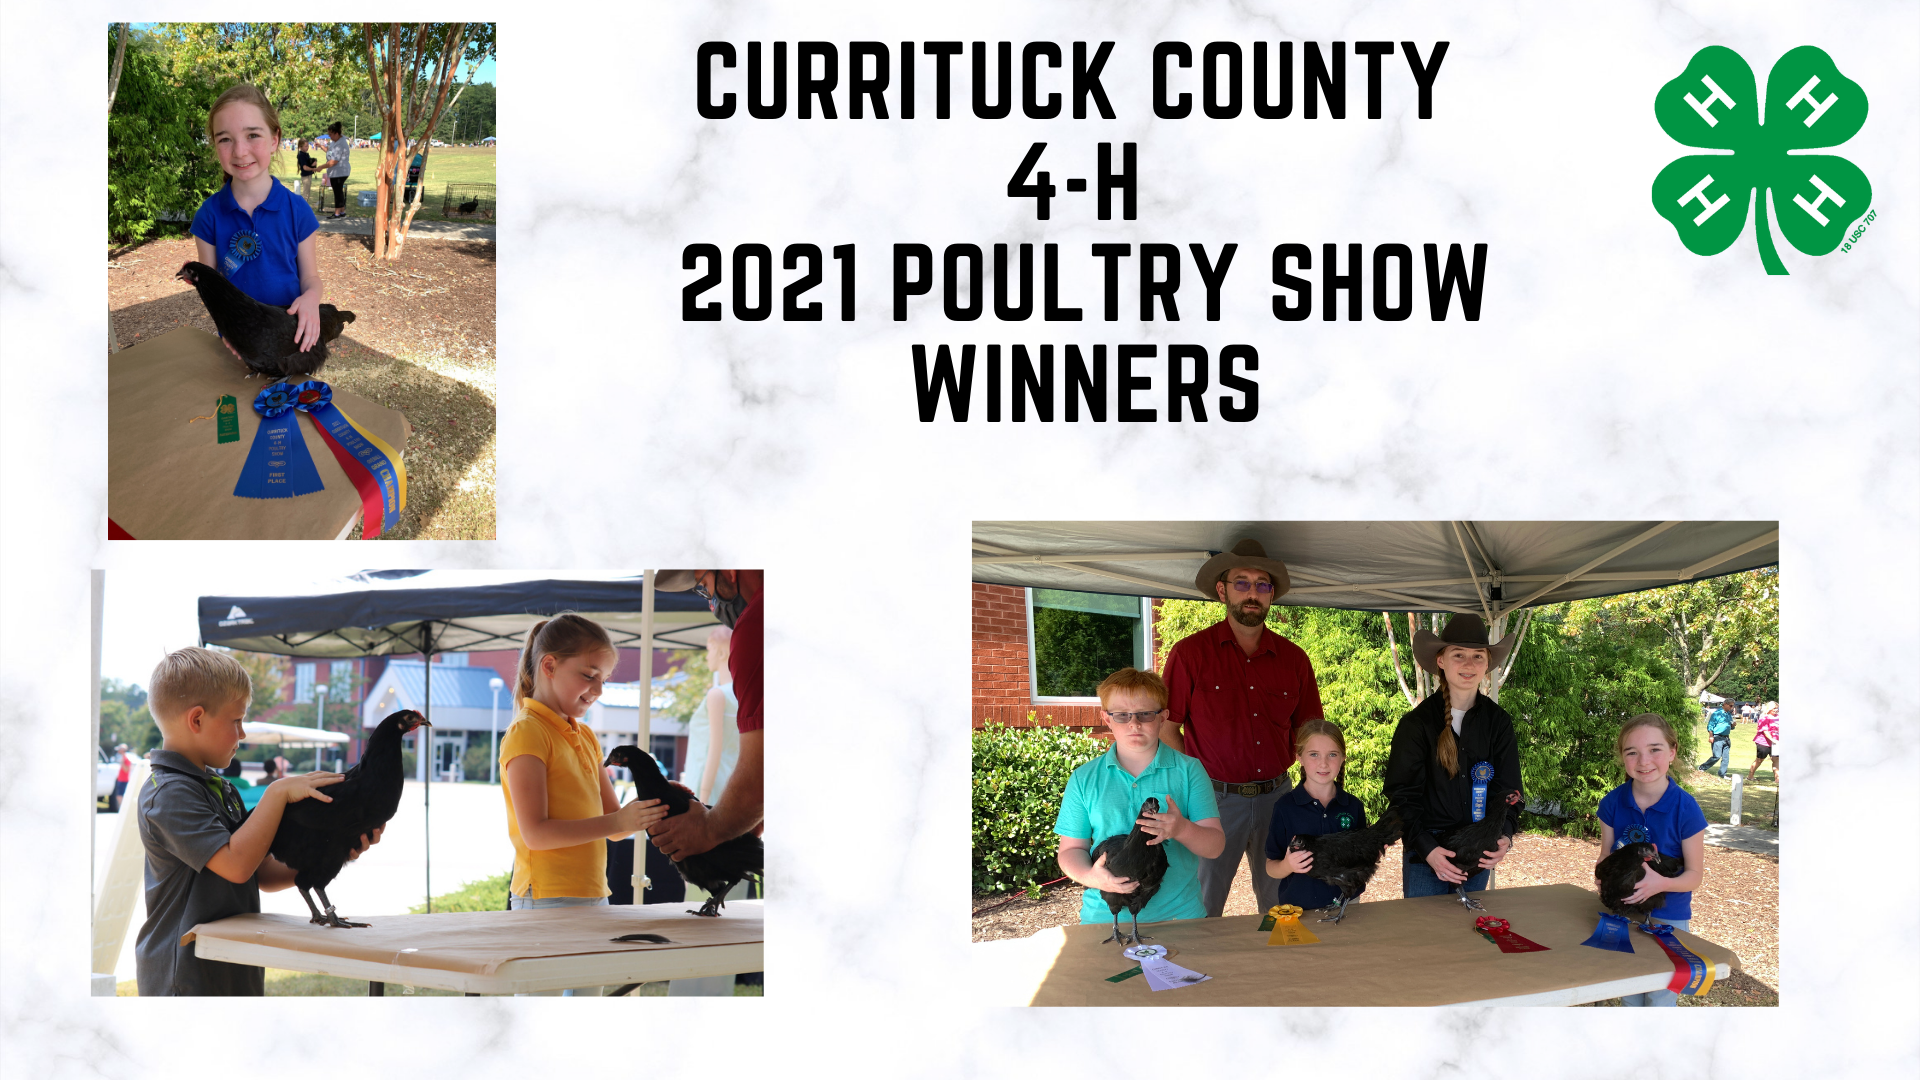 poultry show winners